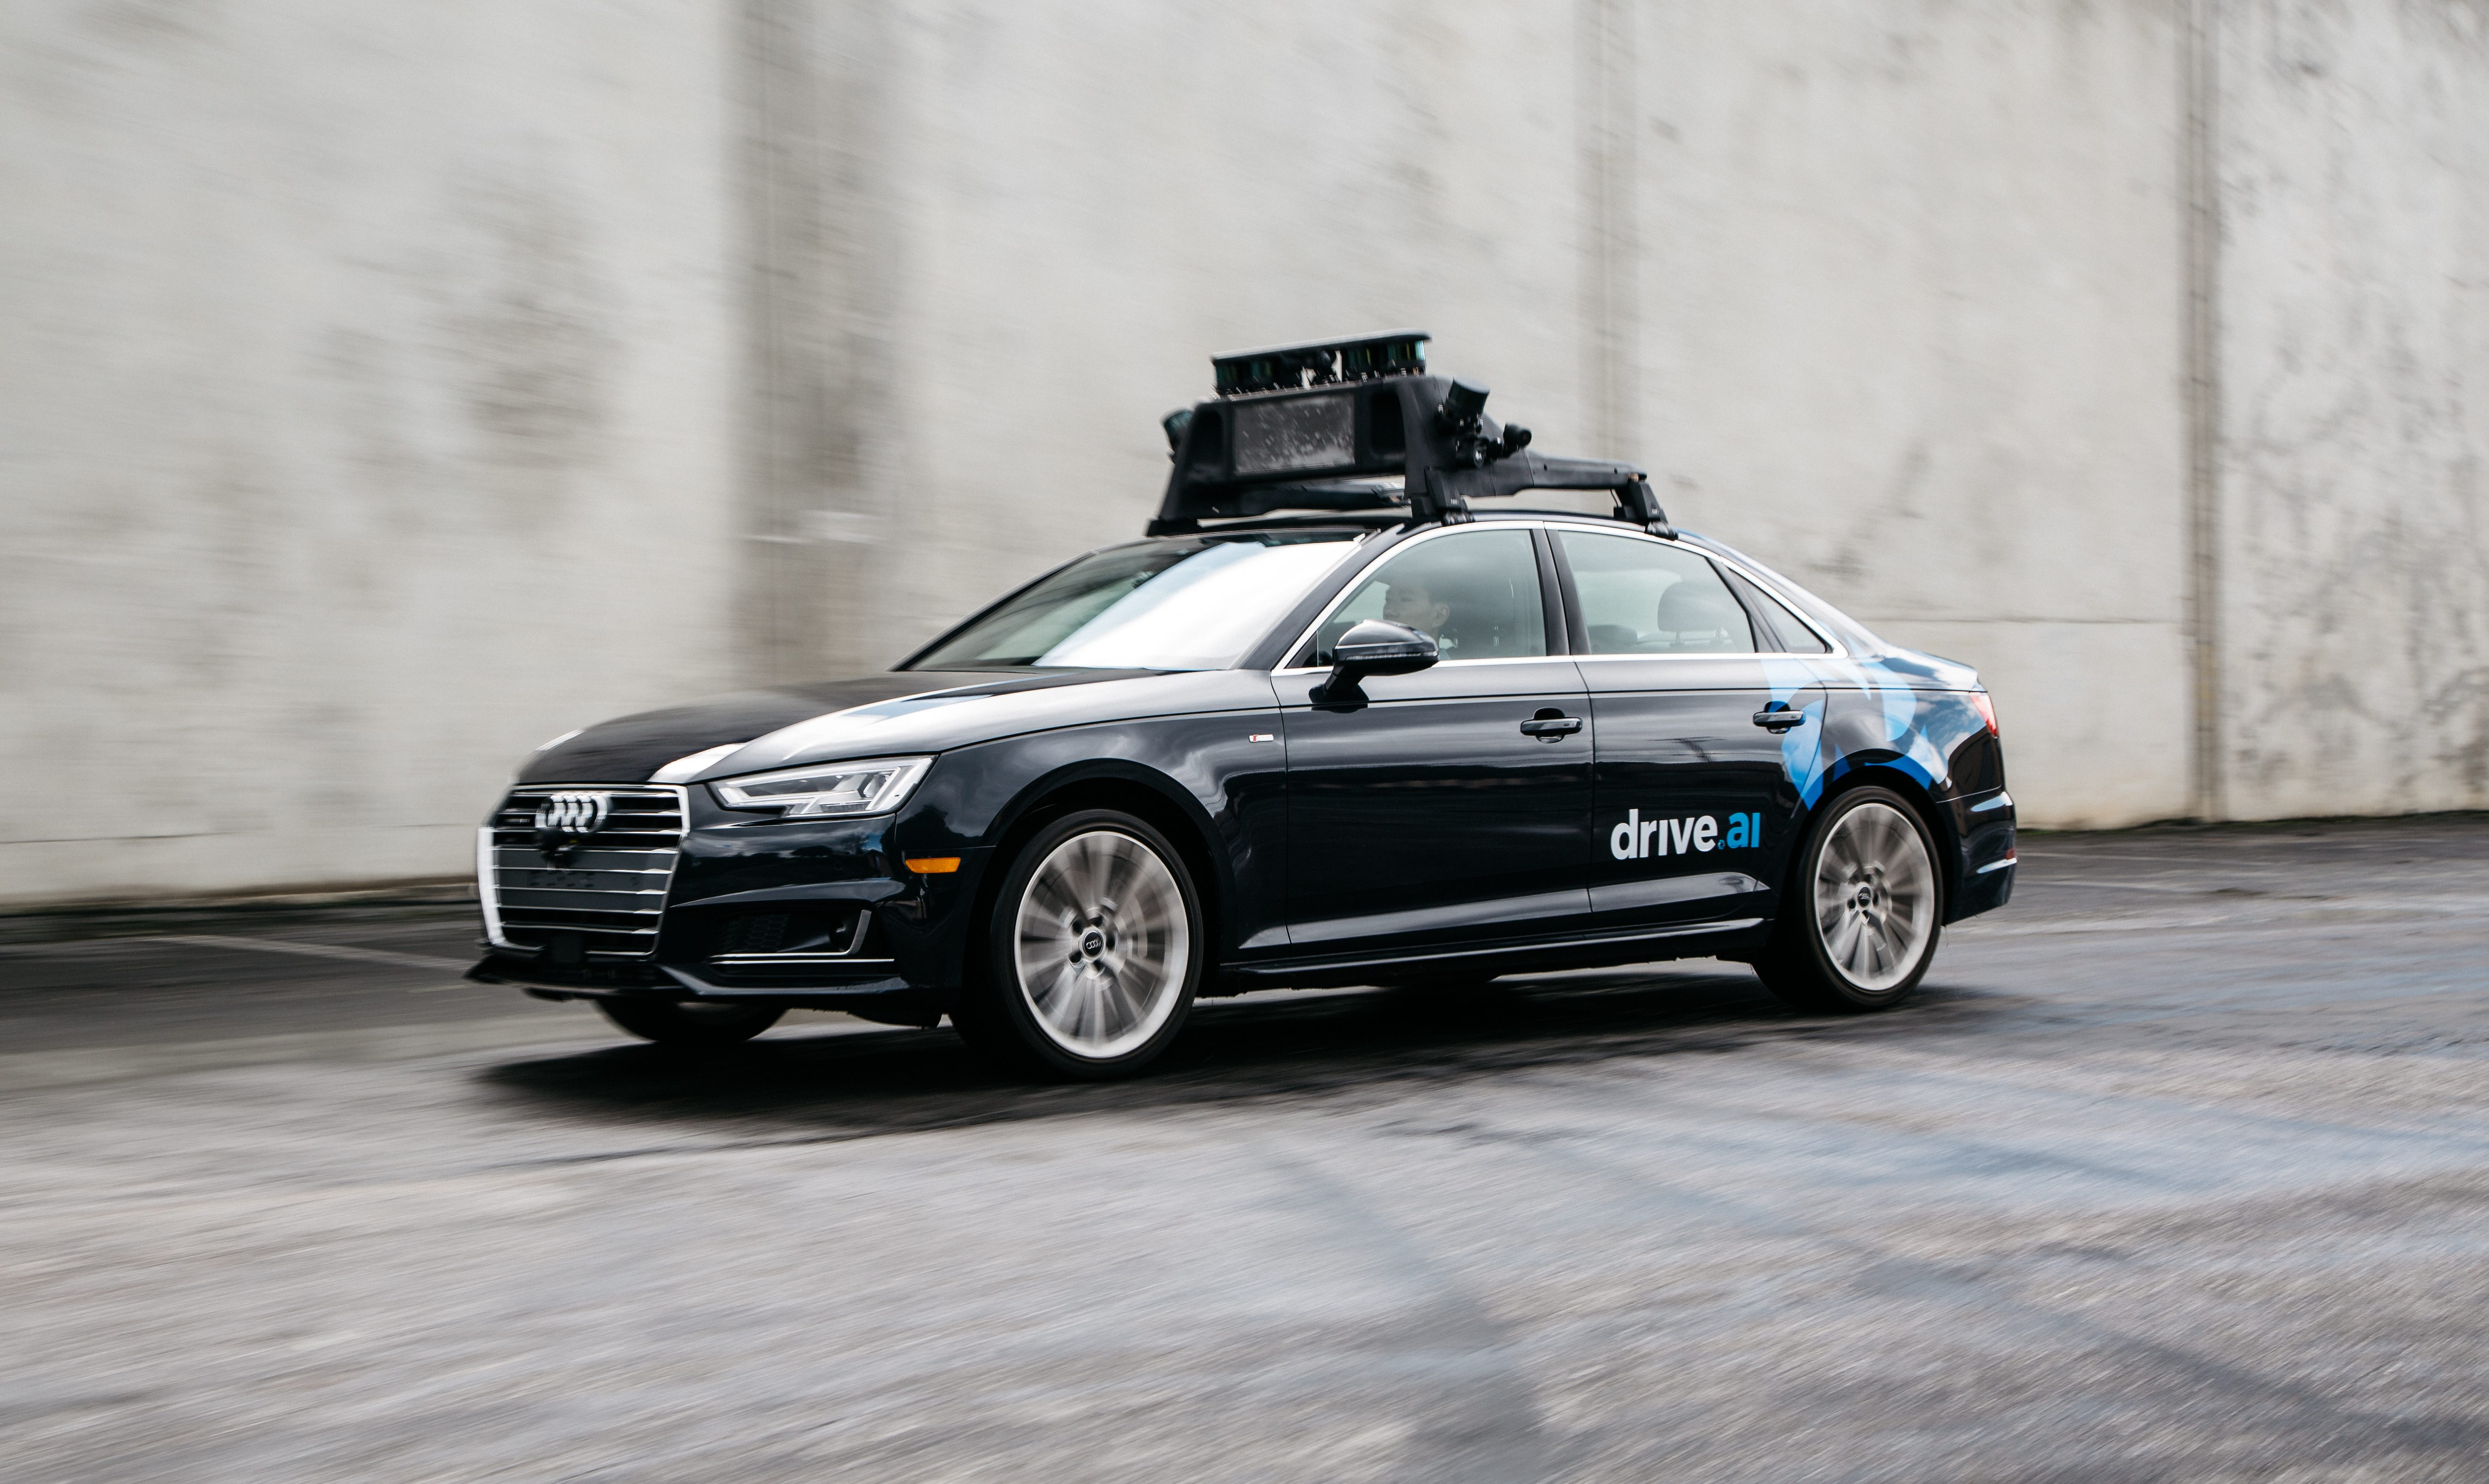 Lyft is partnering with Drive ai to offer self-driving car